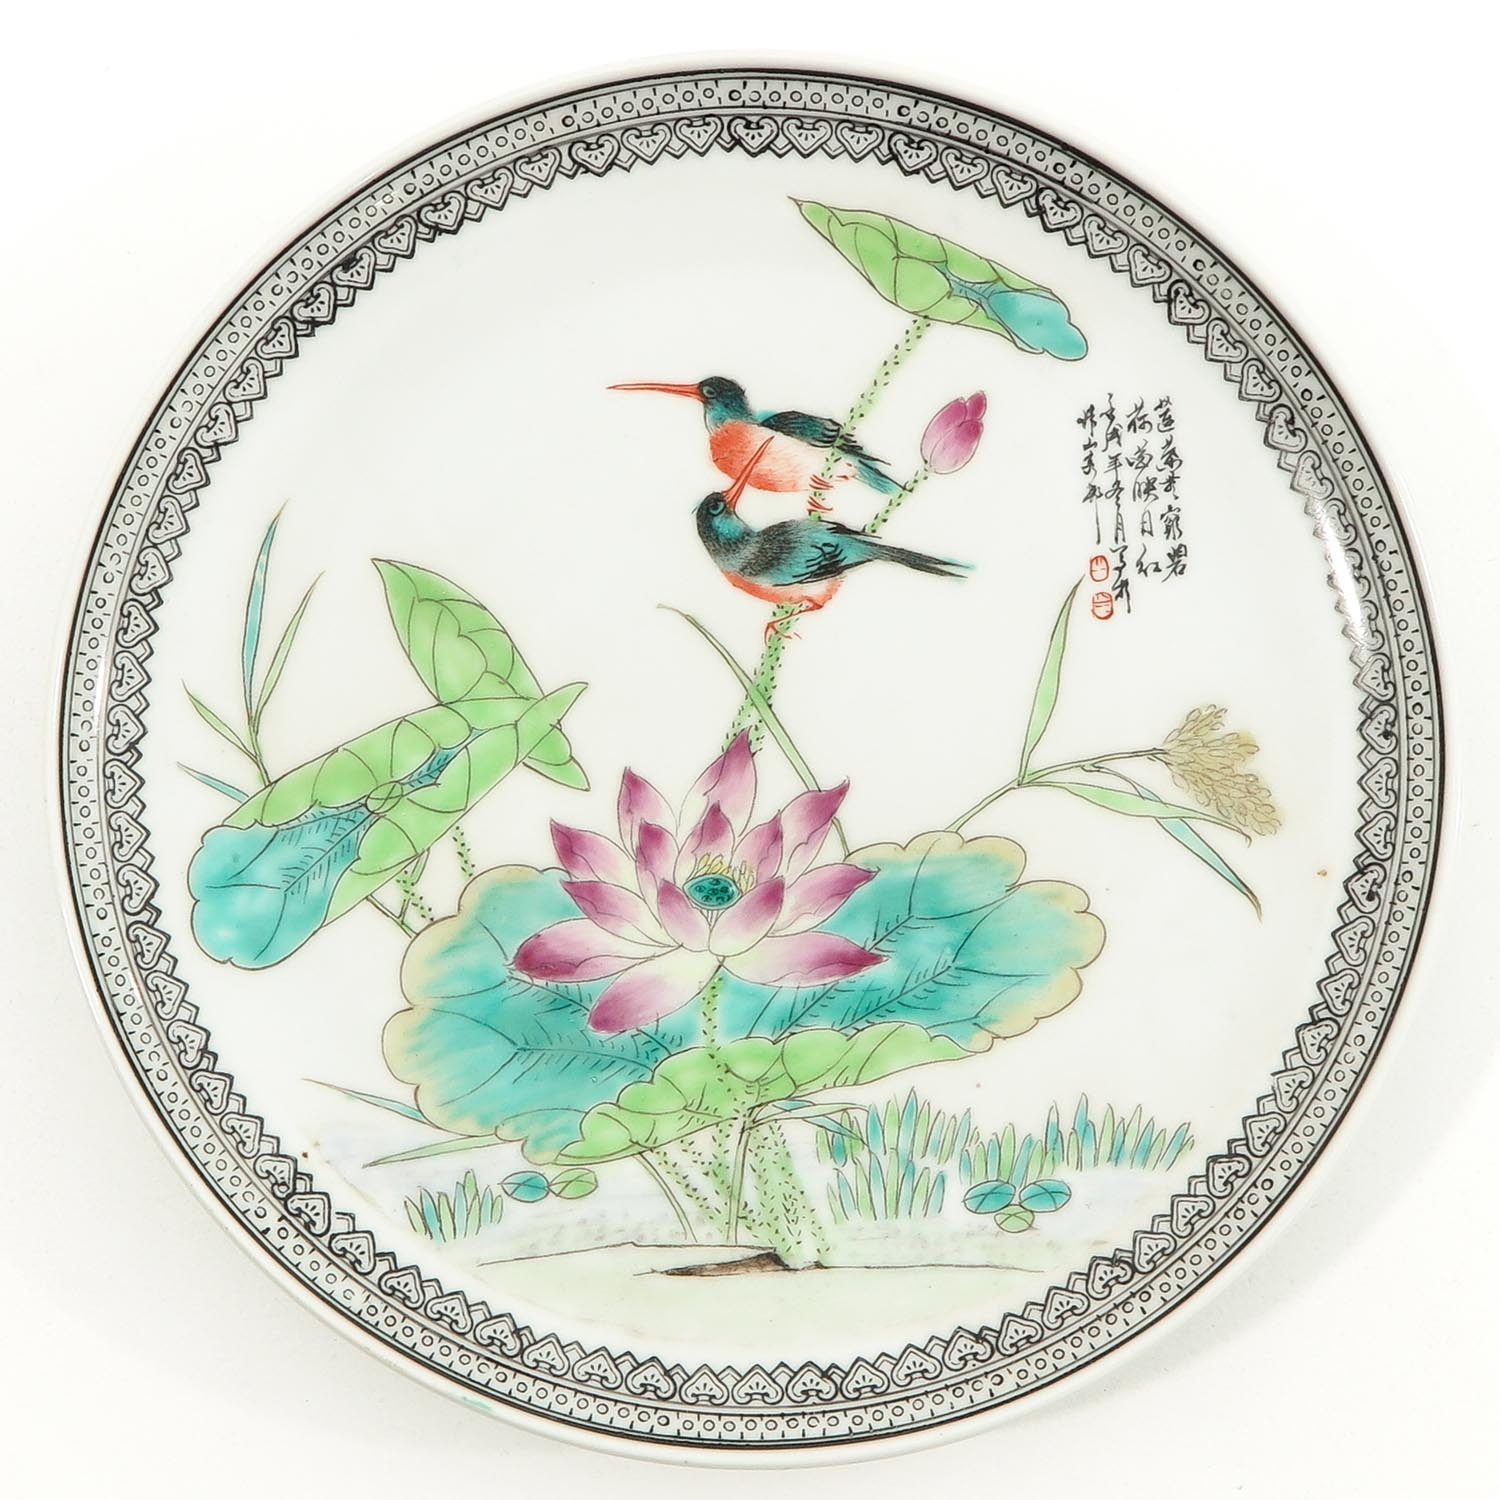 A Collection of 3 Plates - Image 5 of 10